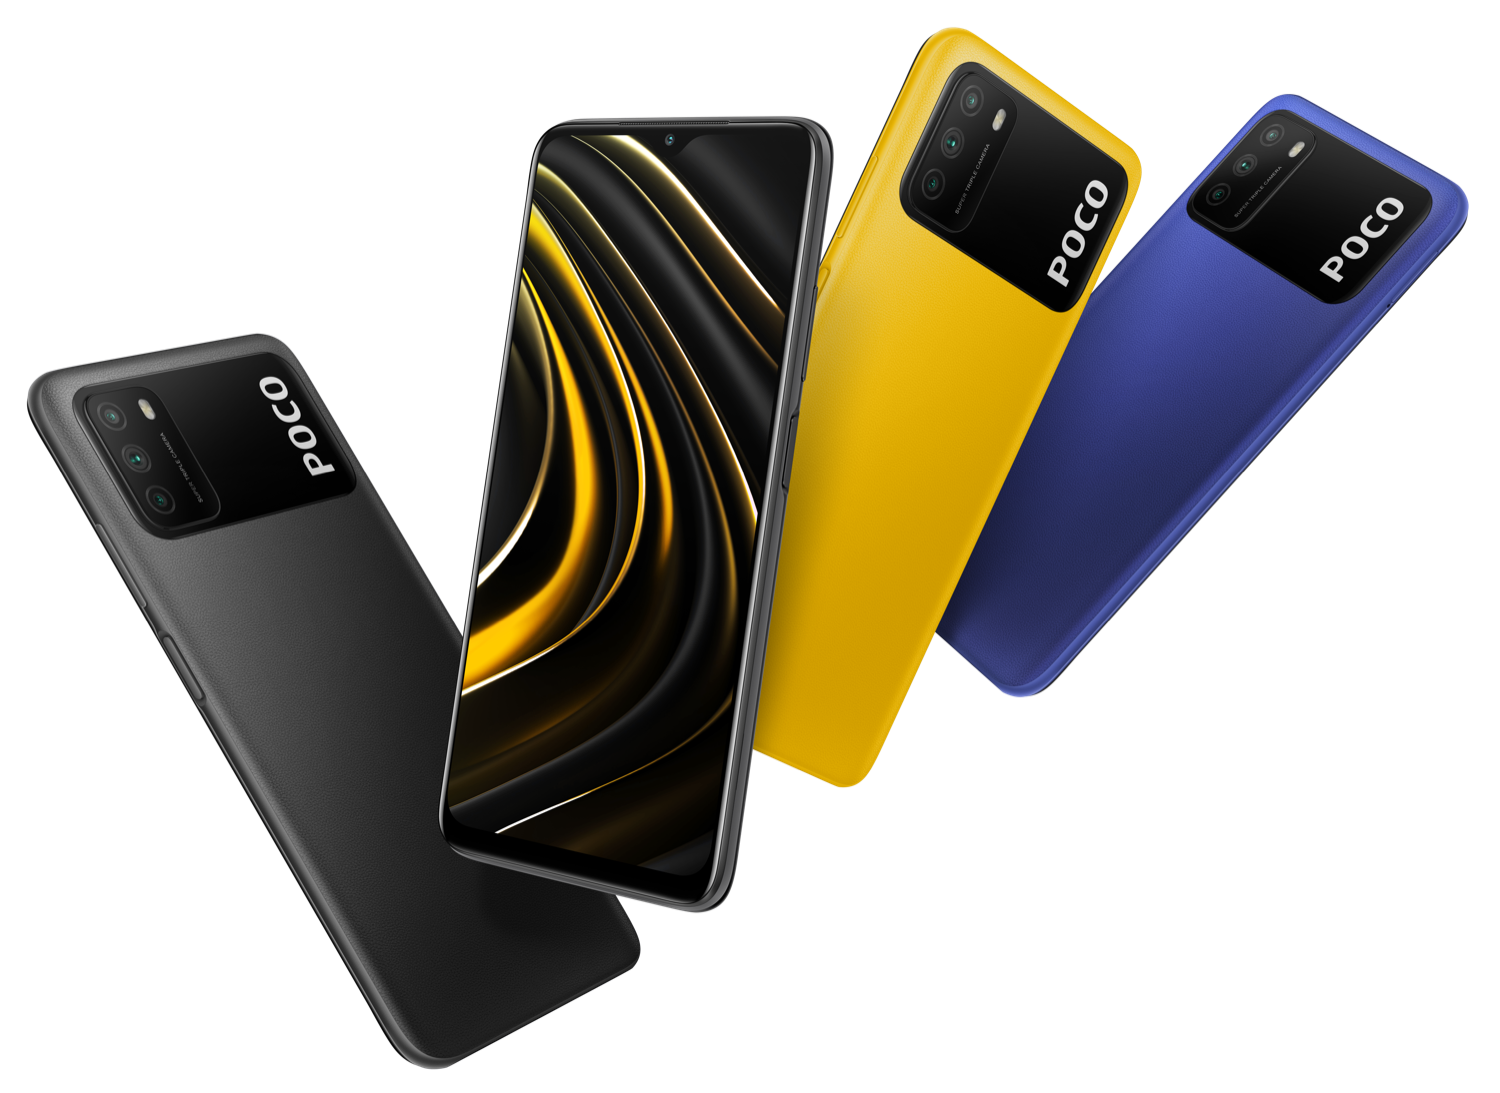 Poco M3 launched: Looks similar to OnePlus 8T Cyberpunk 2077 Edition